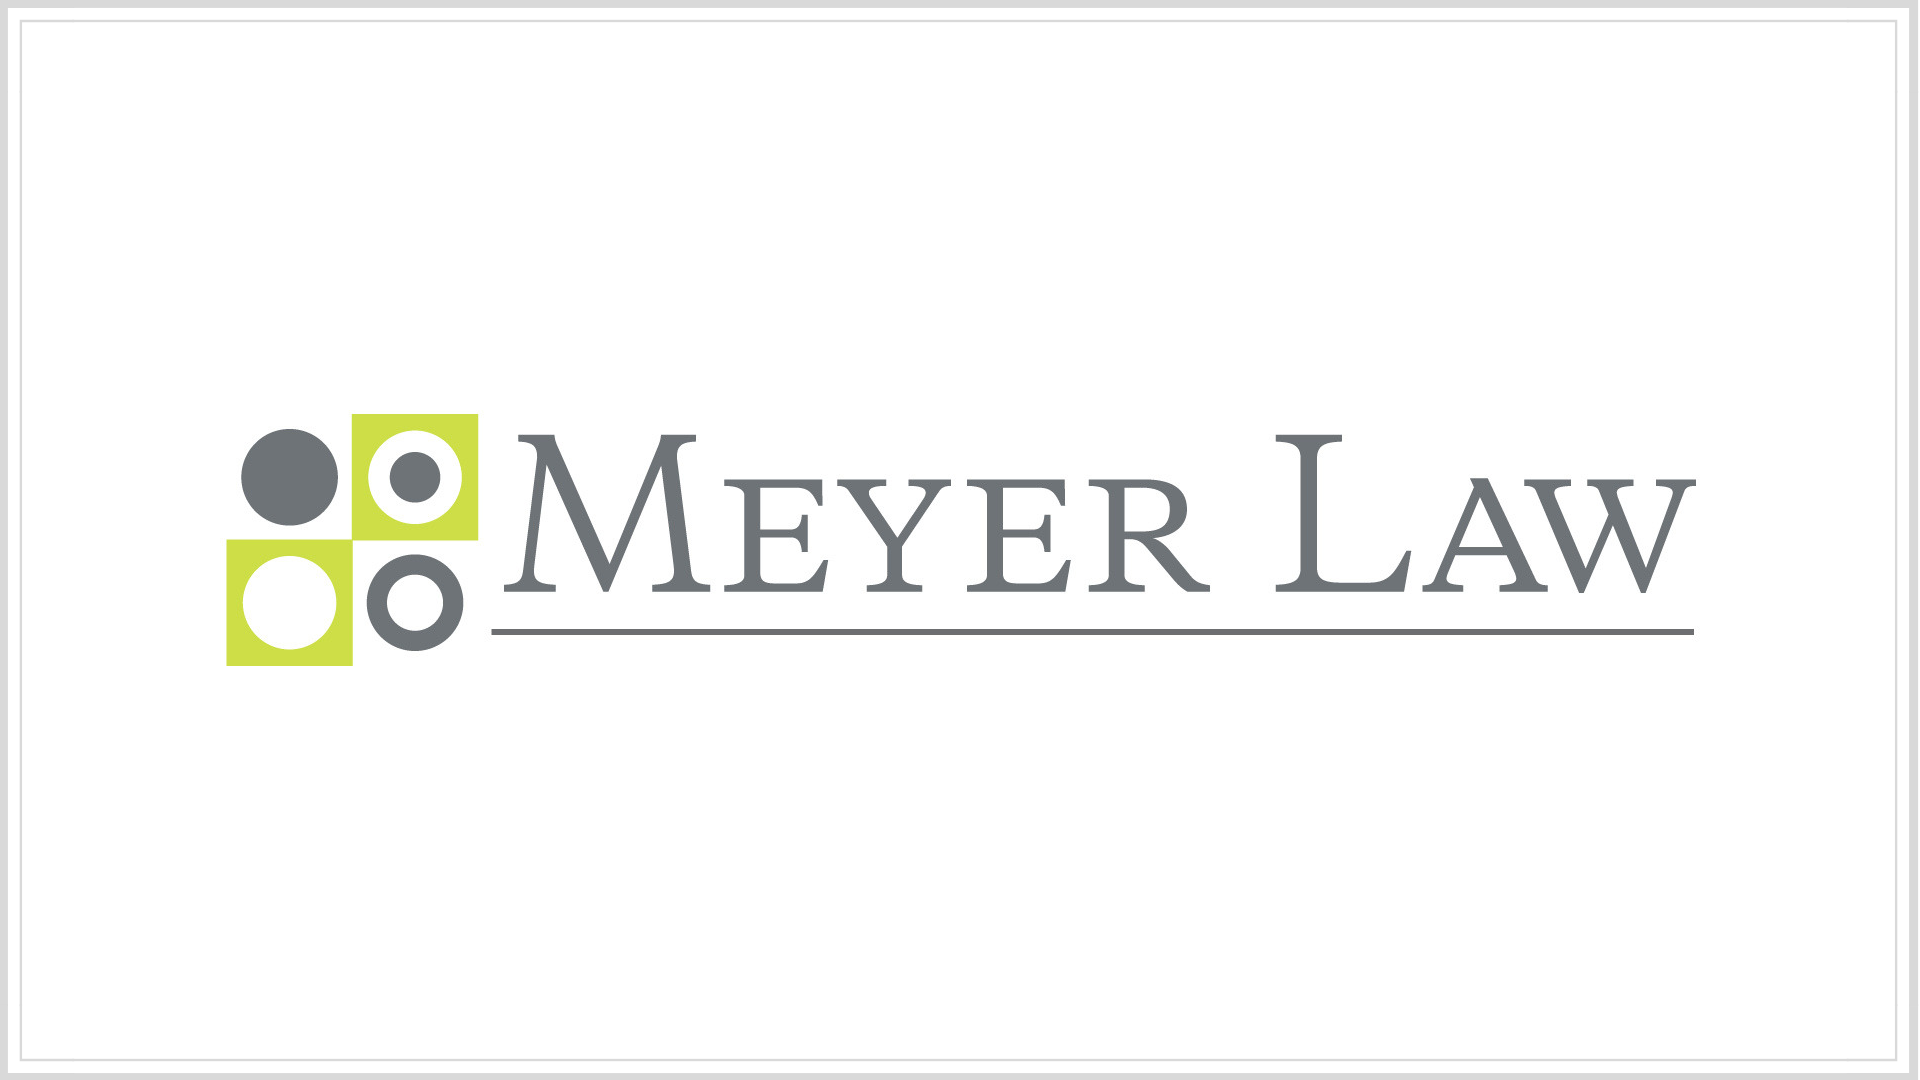 Meyer Law | Chloe Capital